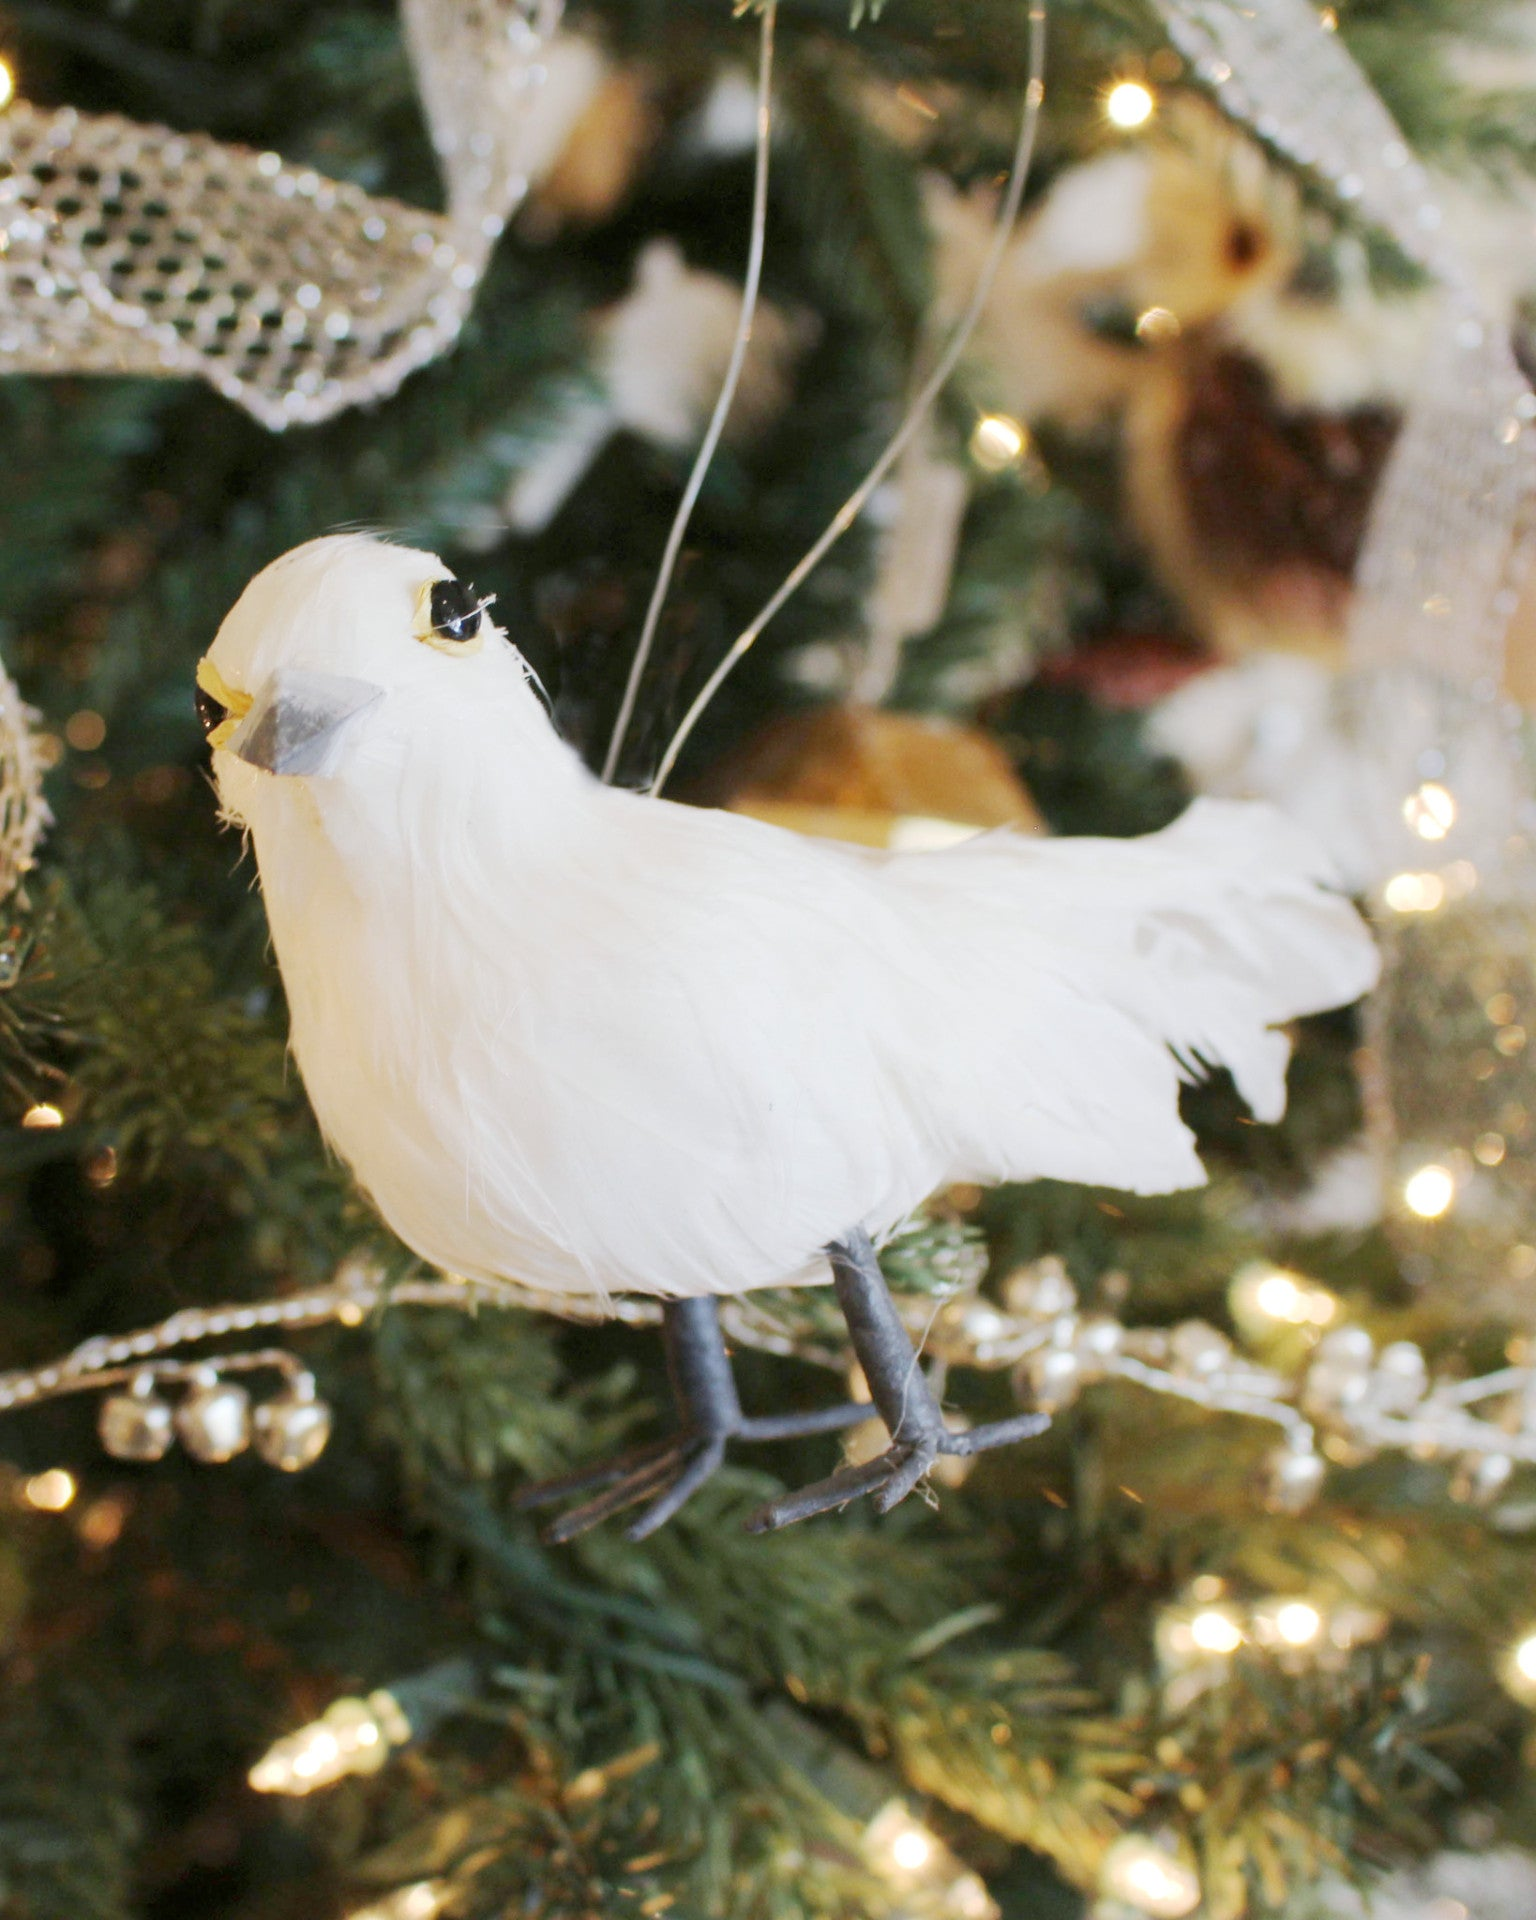 White dove ornament - White Dove Ornament